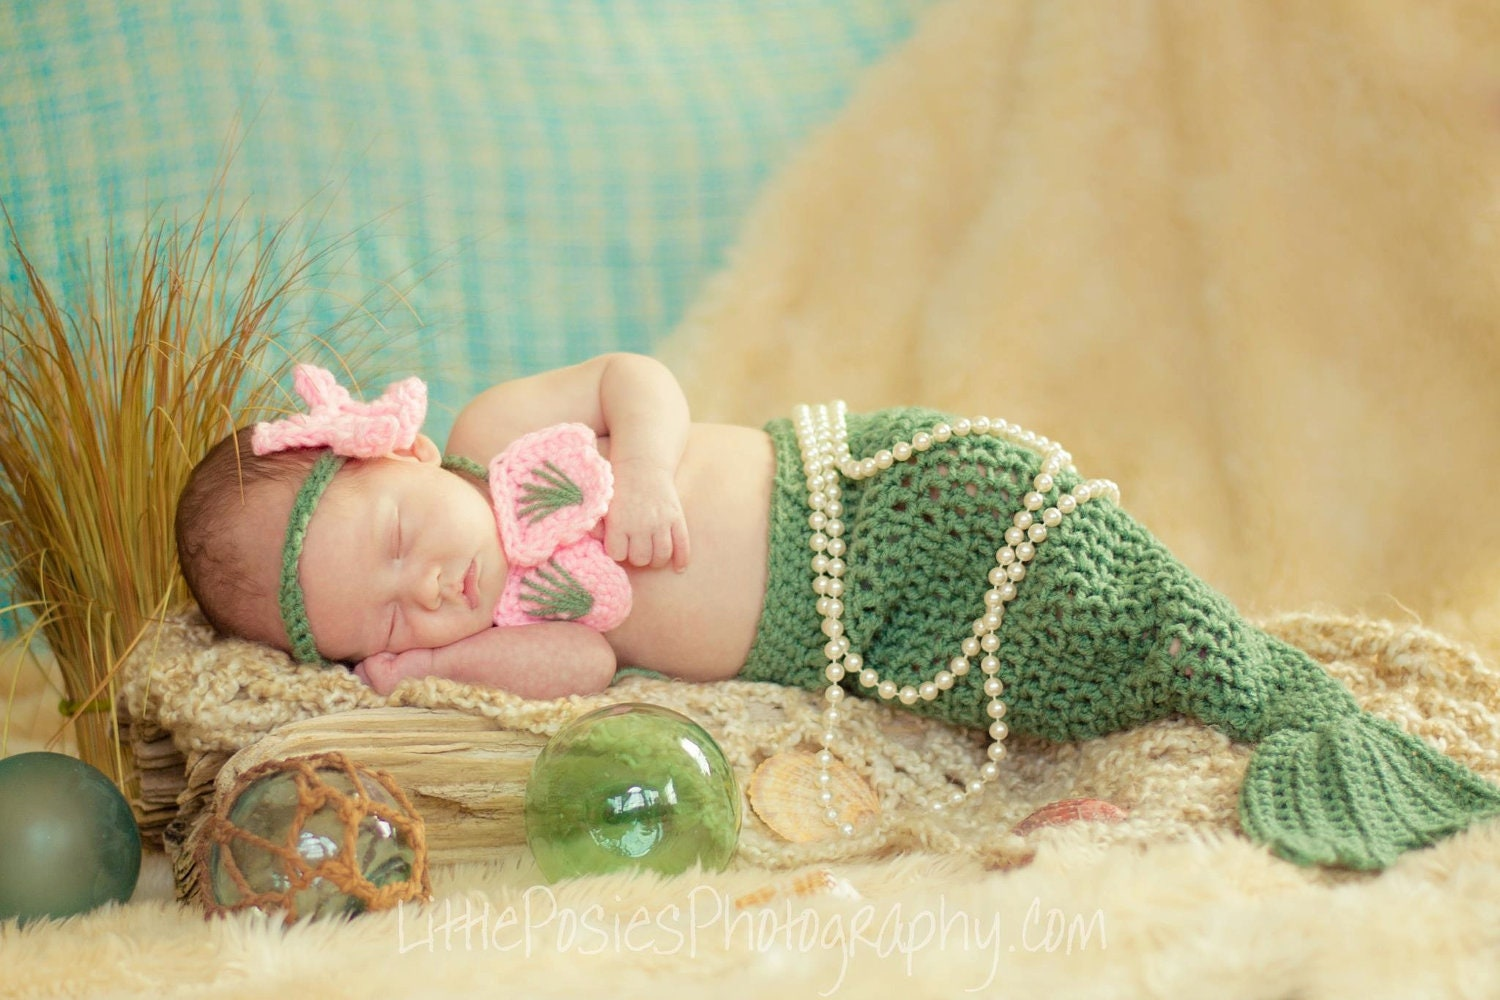 Crochet Patterns Mermaid : Crochet Mermaid Photo Prop Set Baby Girl by JustForBabyWithLove